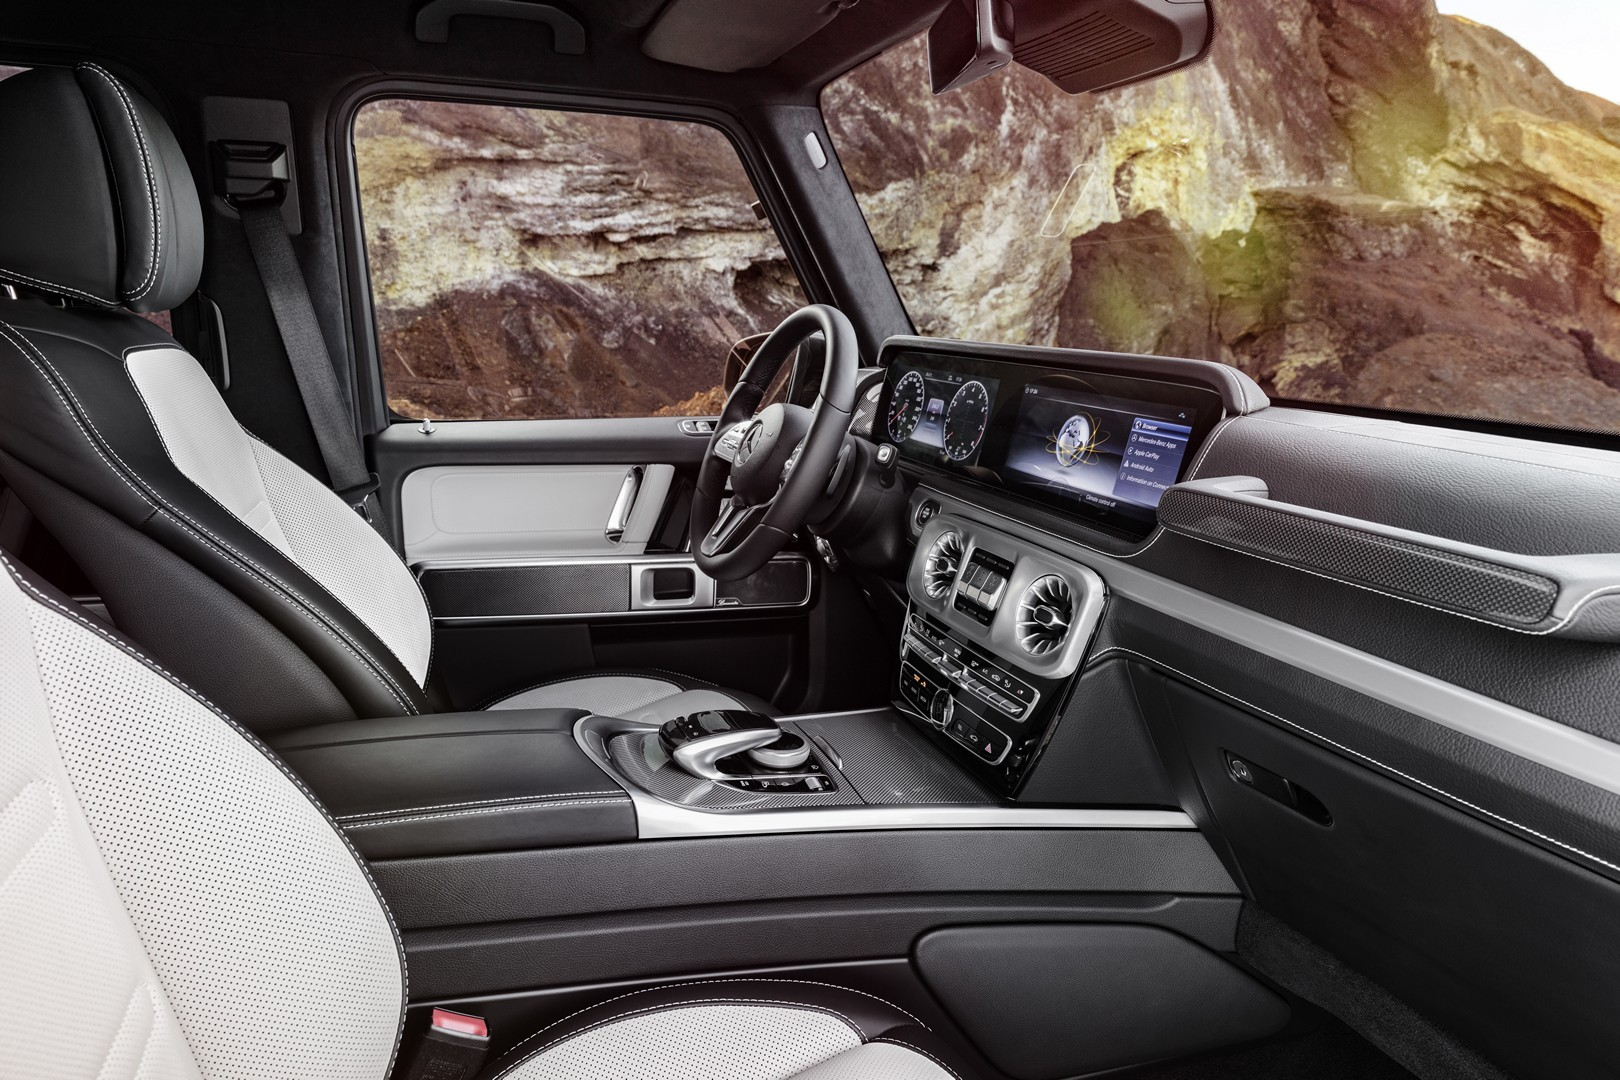 2019 mercedes g-class interior officially revealed